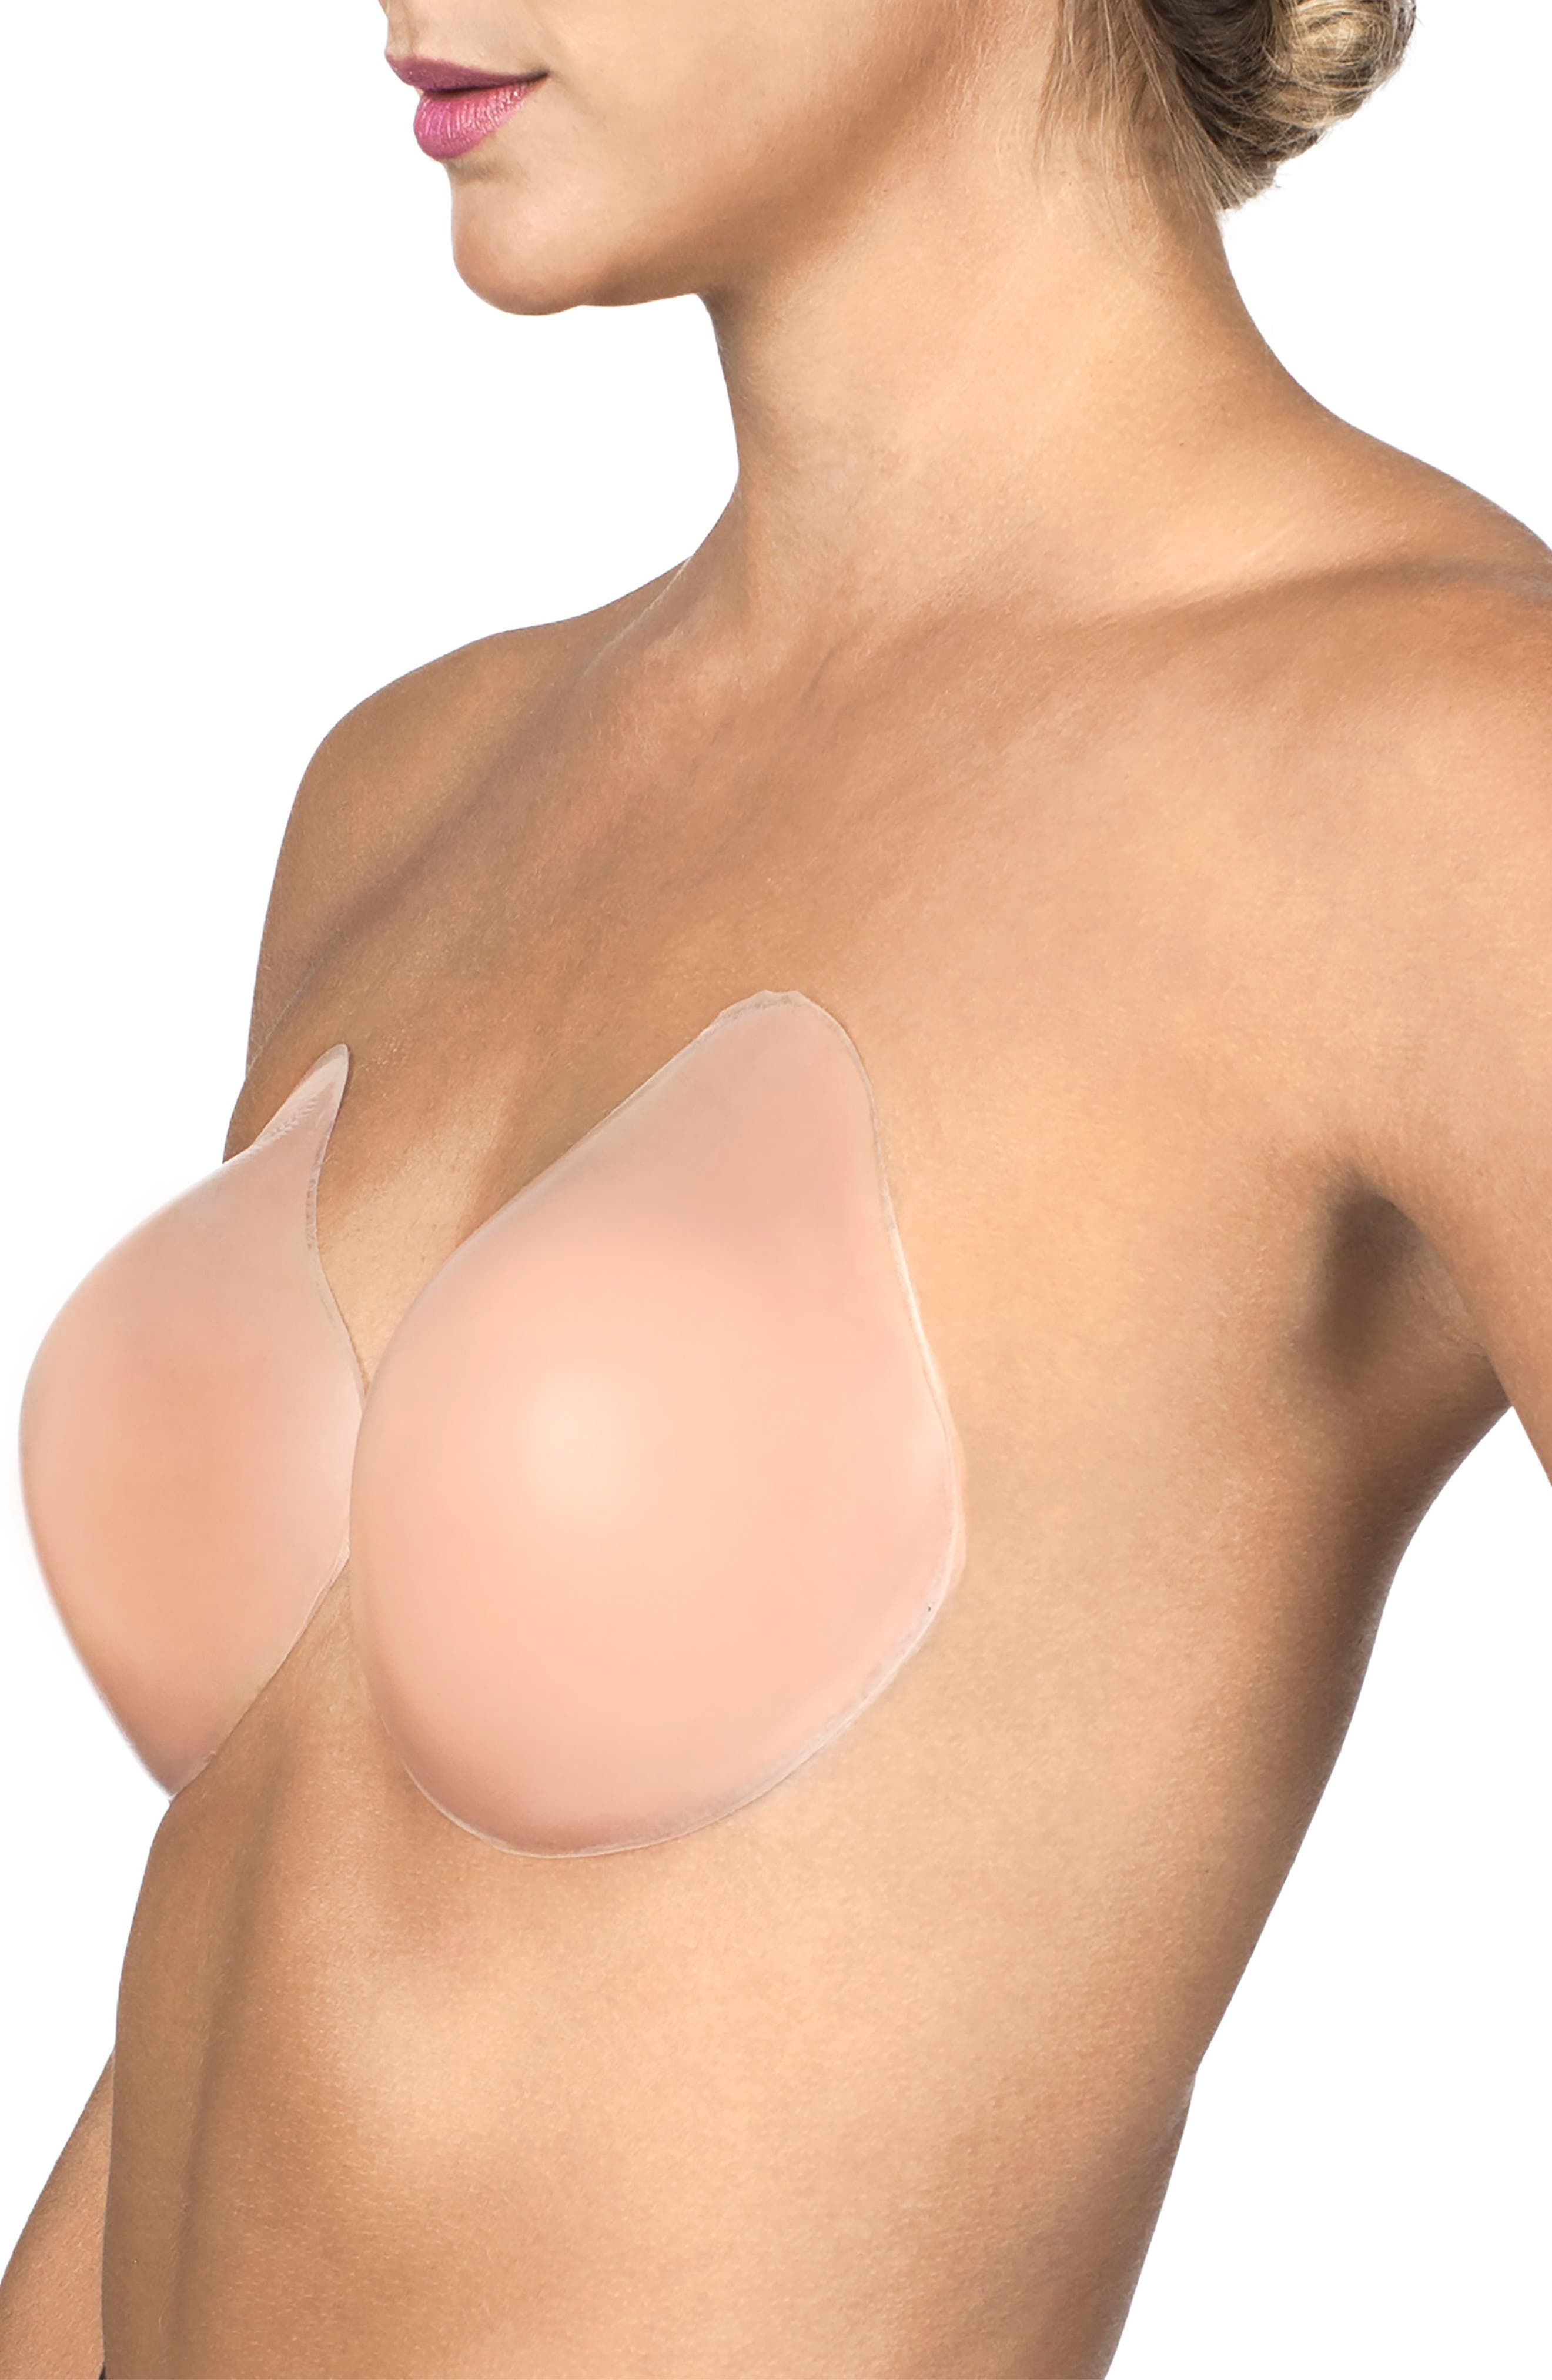 Lift It Up Adhesive Silicone Bra,                             Alternate thumbnail 3, color,                             NUDE